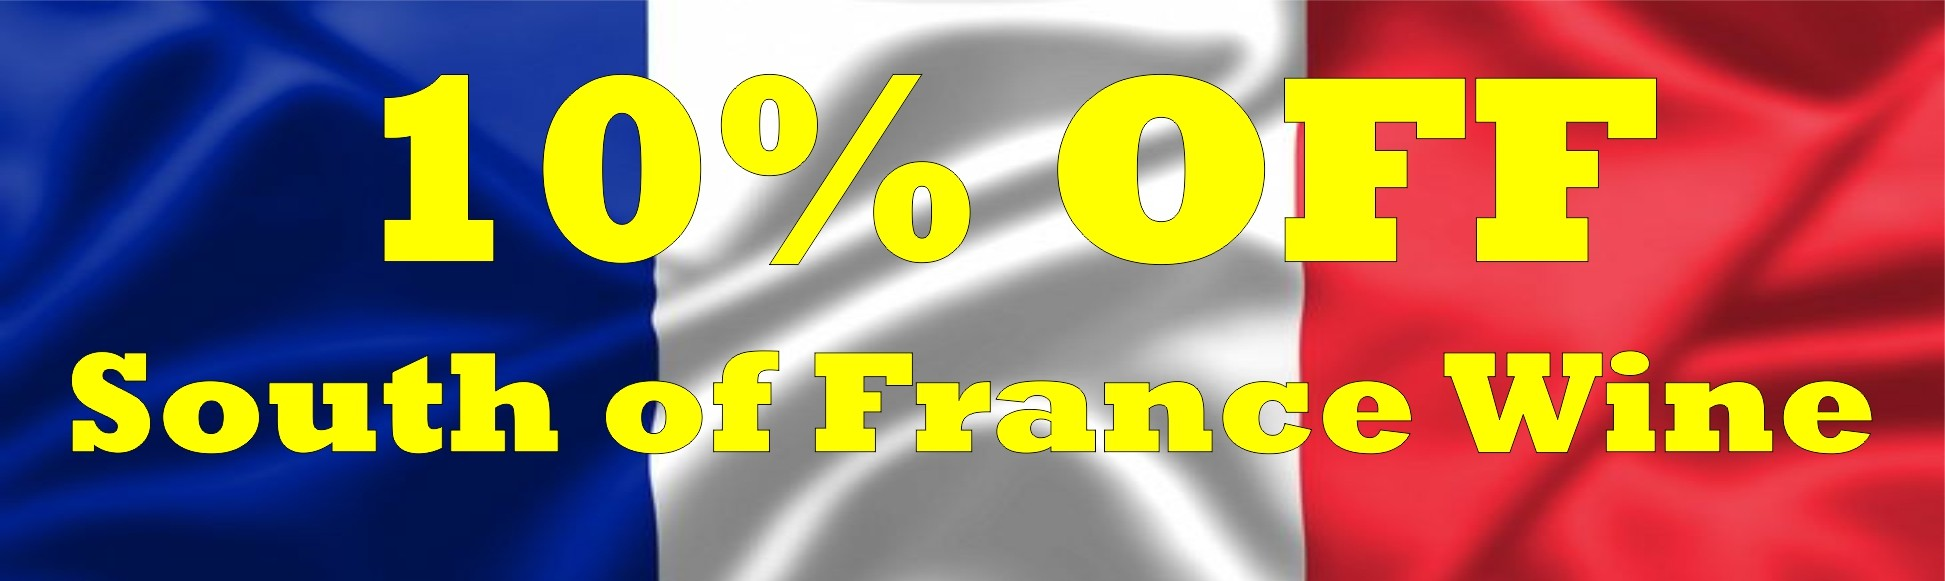 South of France - 10% Off